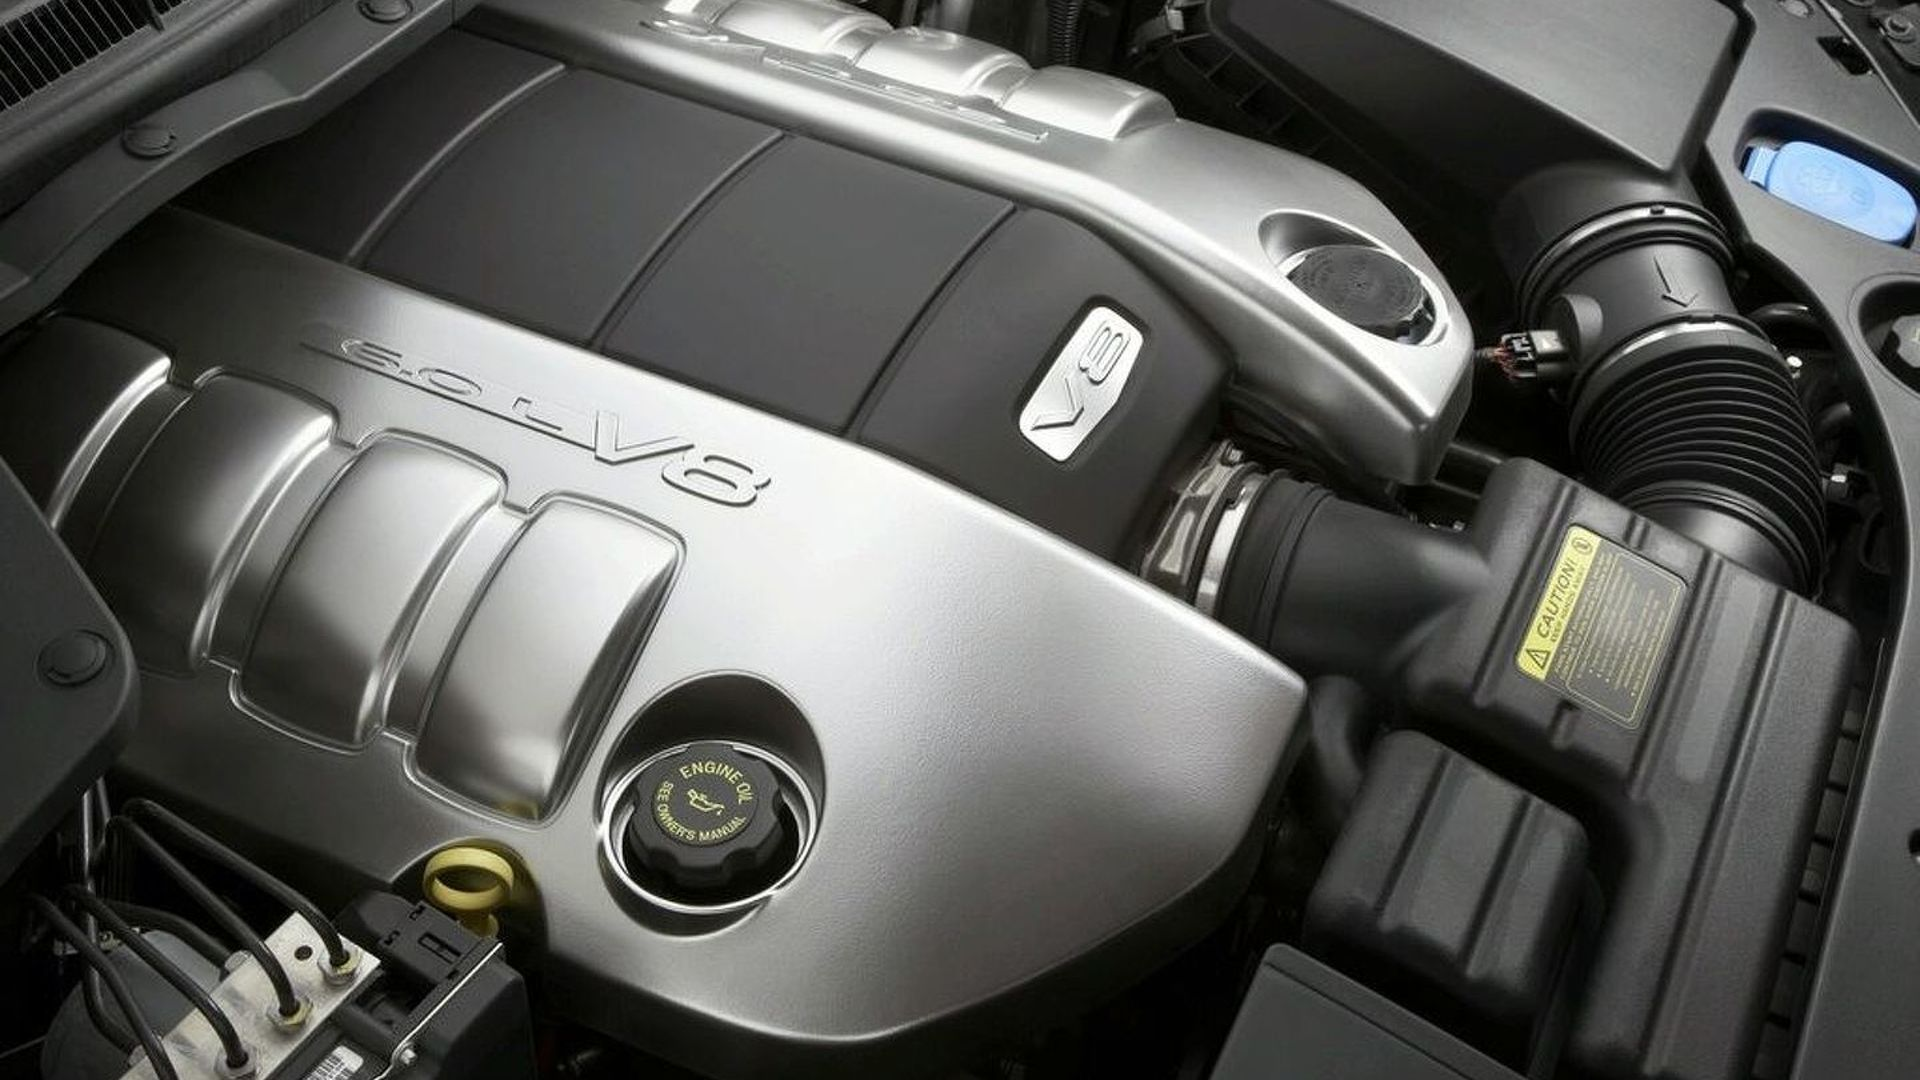 2009 Pontiac G8 GXP to use 6.2L Corvette Engine